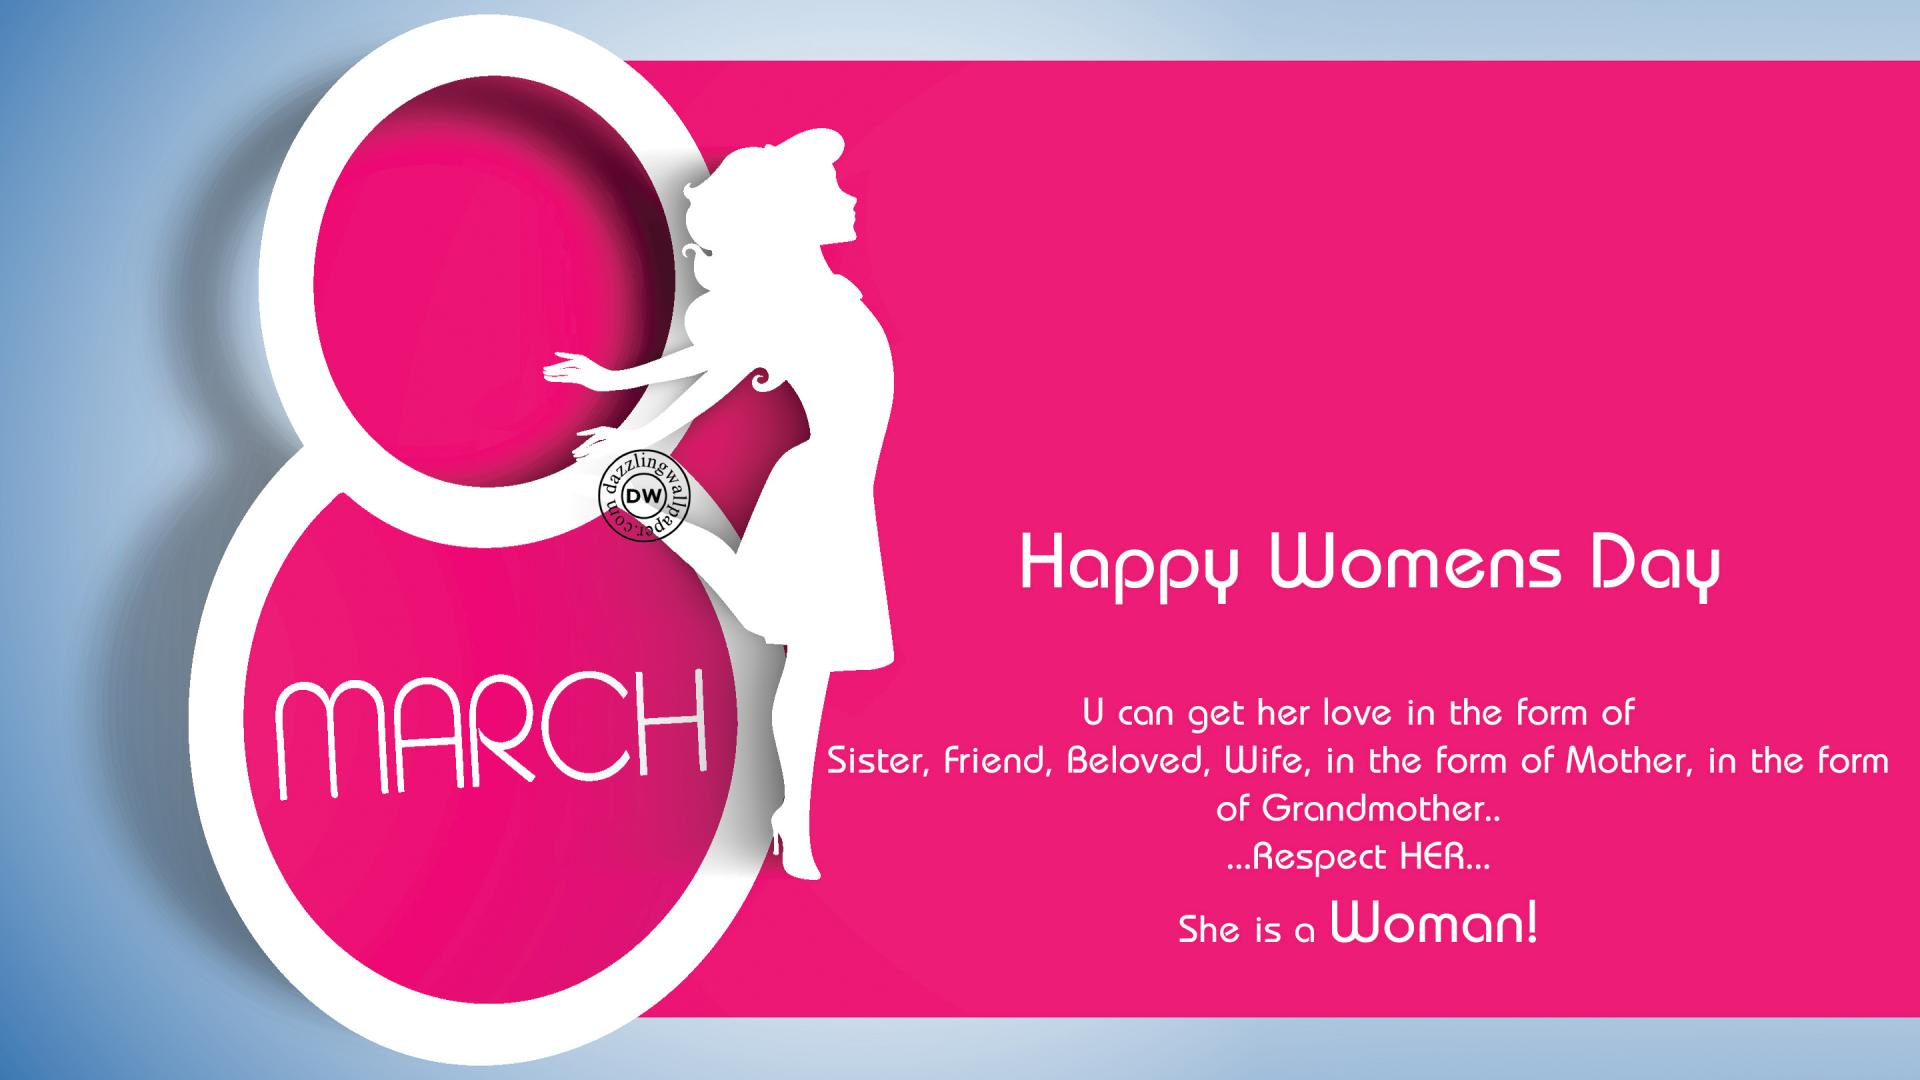 International Womans Day Wallpaper 2   2880 X 1800 stmednet 1920x1080